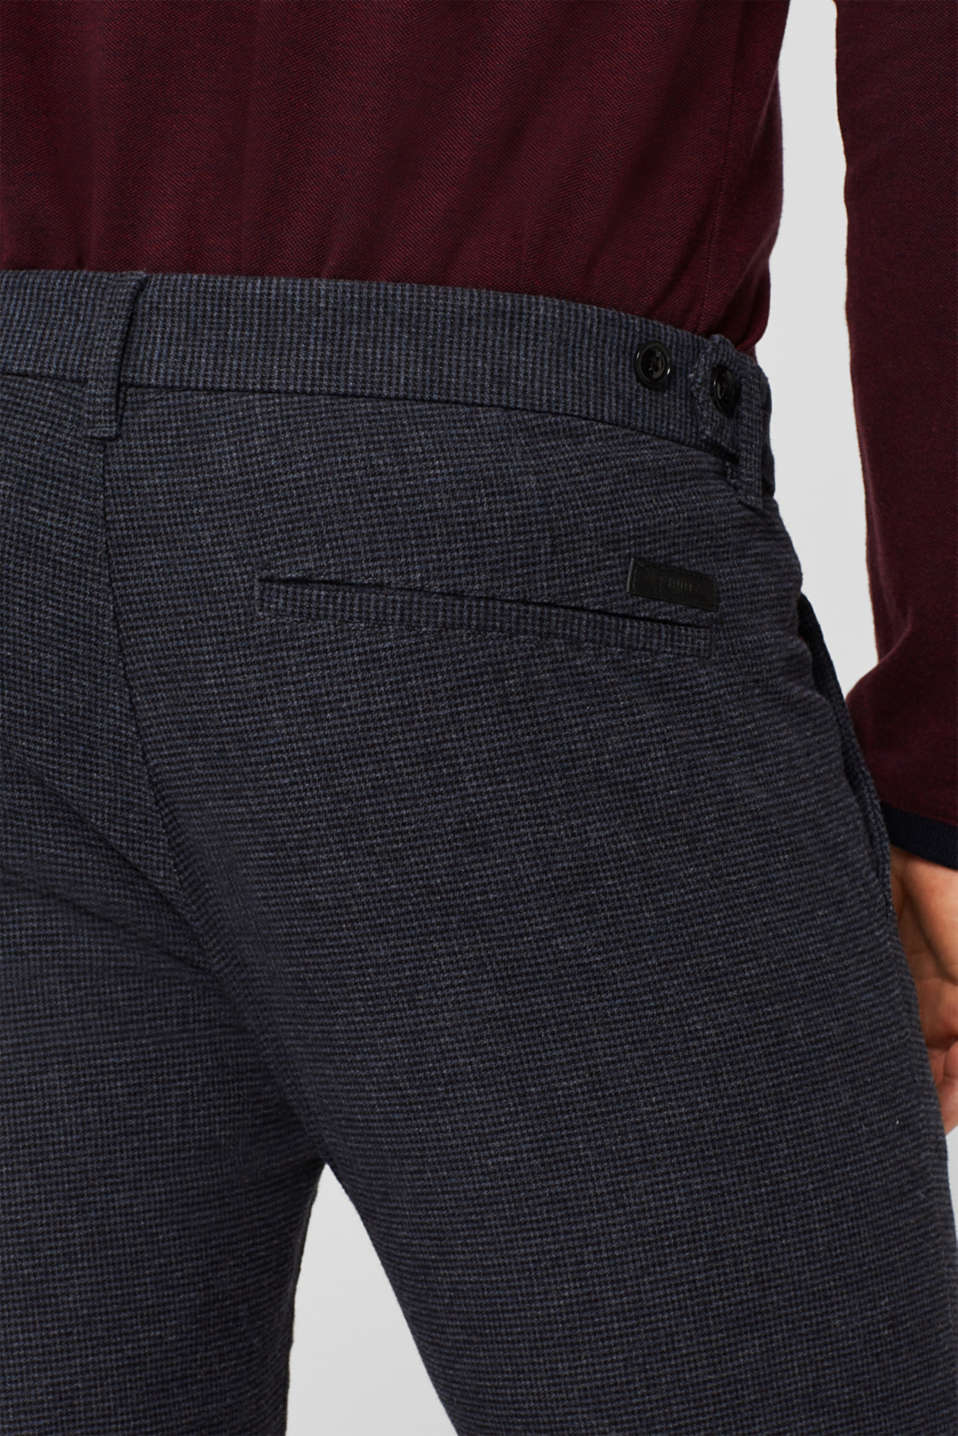 Pants woven Slim fit, NAVY, detail image number 2